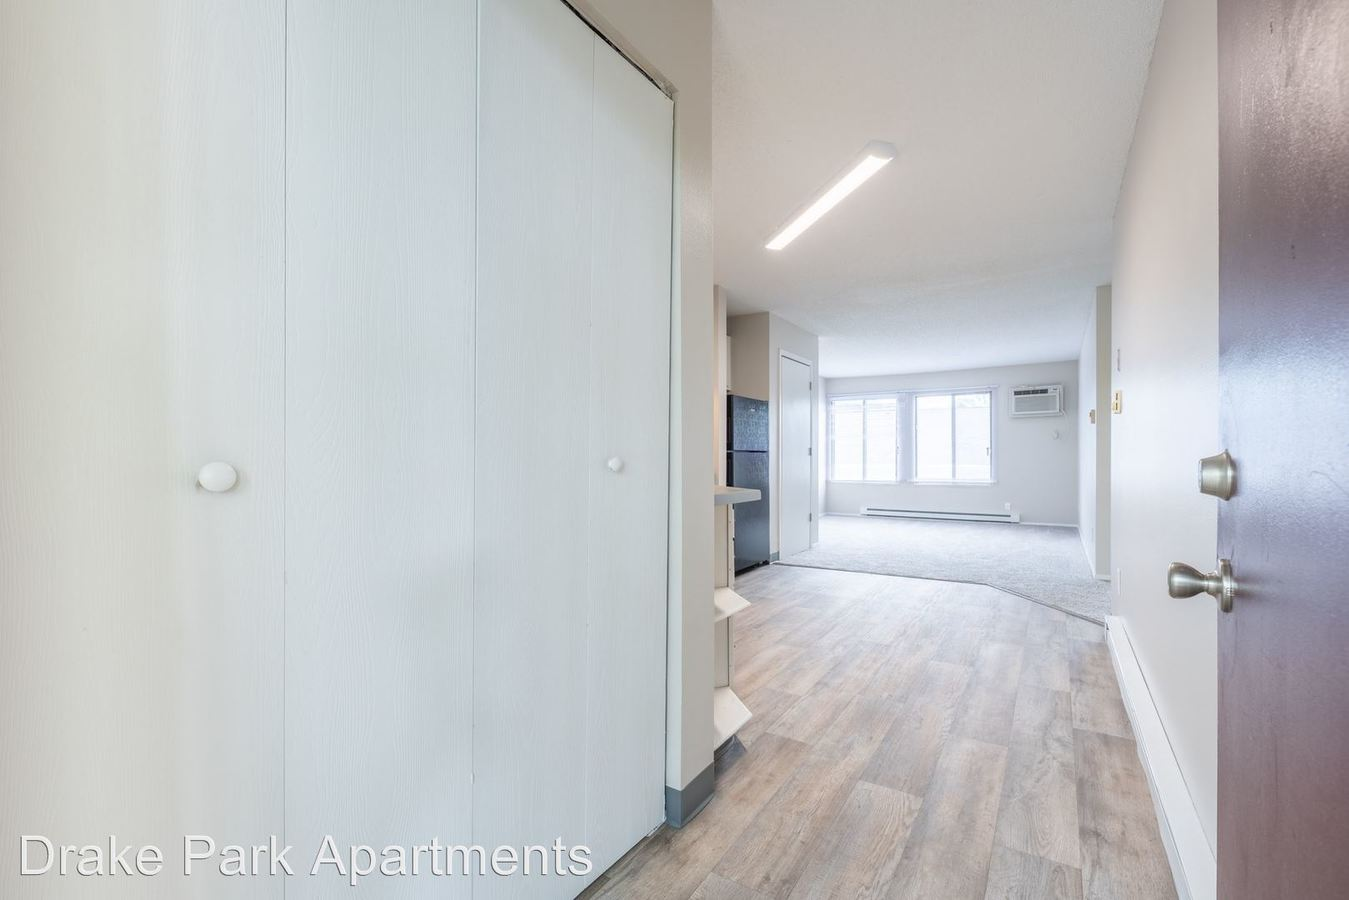 2 Bedrooms 1 Bathroom Apartment for rent at Drake Park Apartments in Des Moines, IA